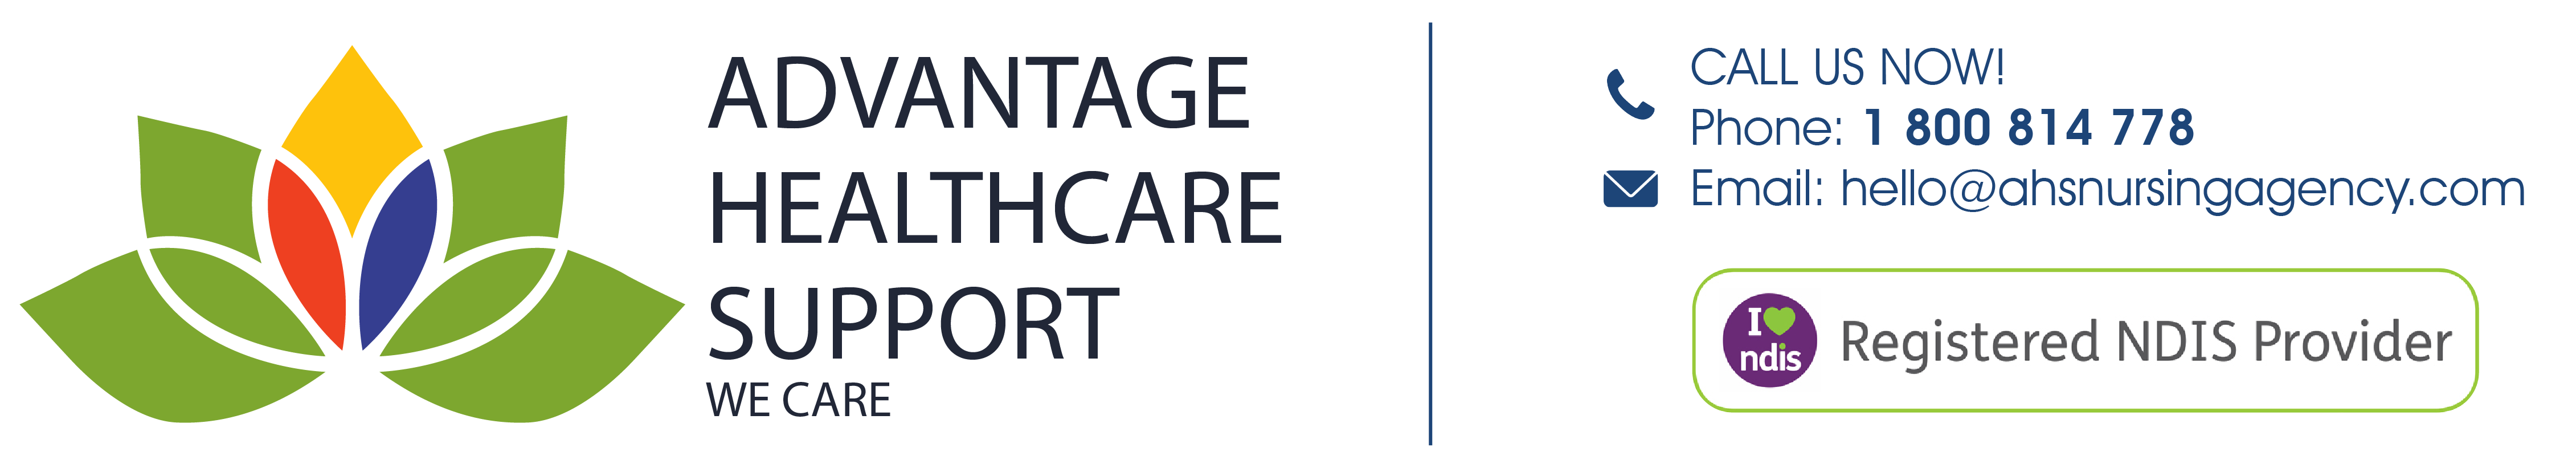 Advantage Healthcare Support Nursing Agency was founded by